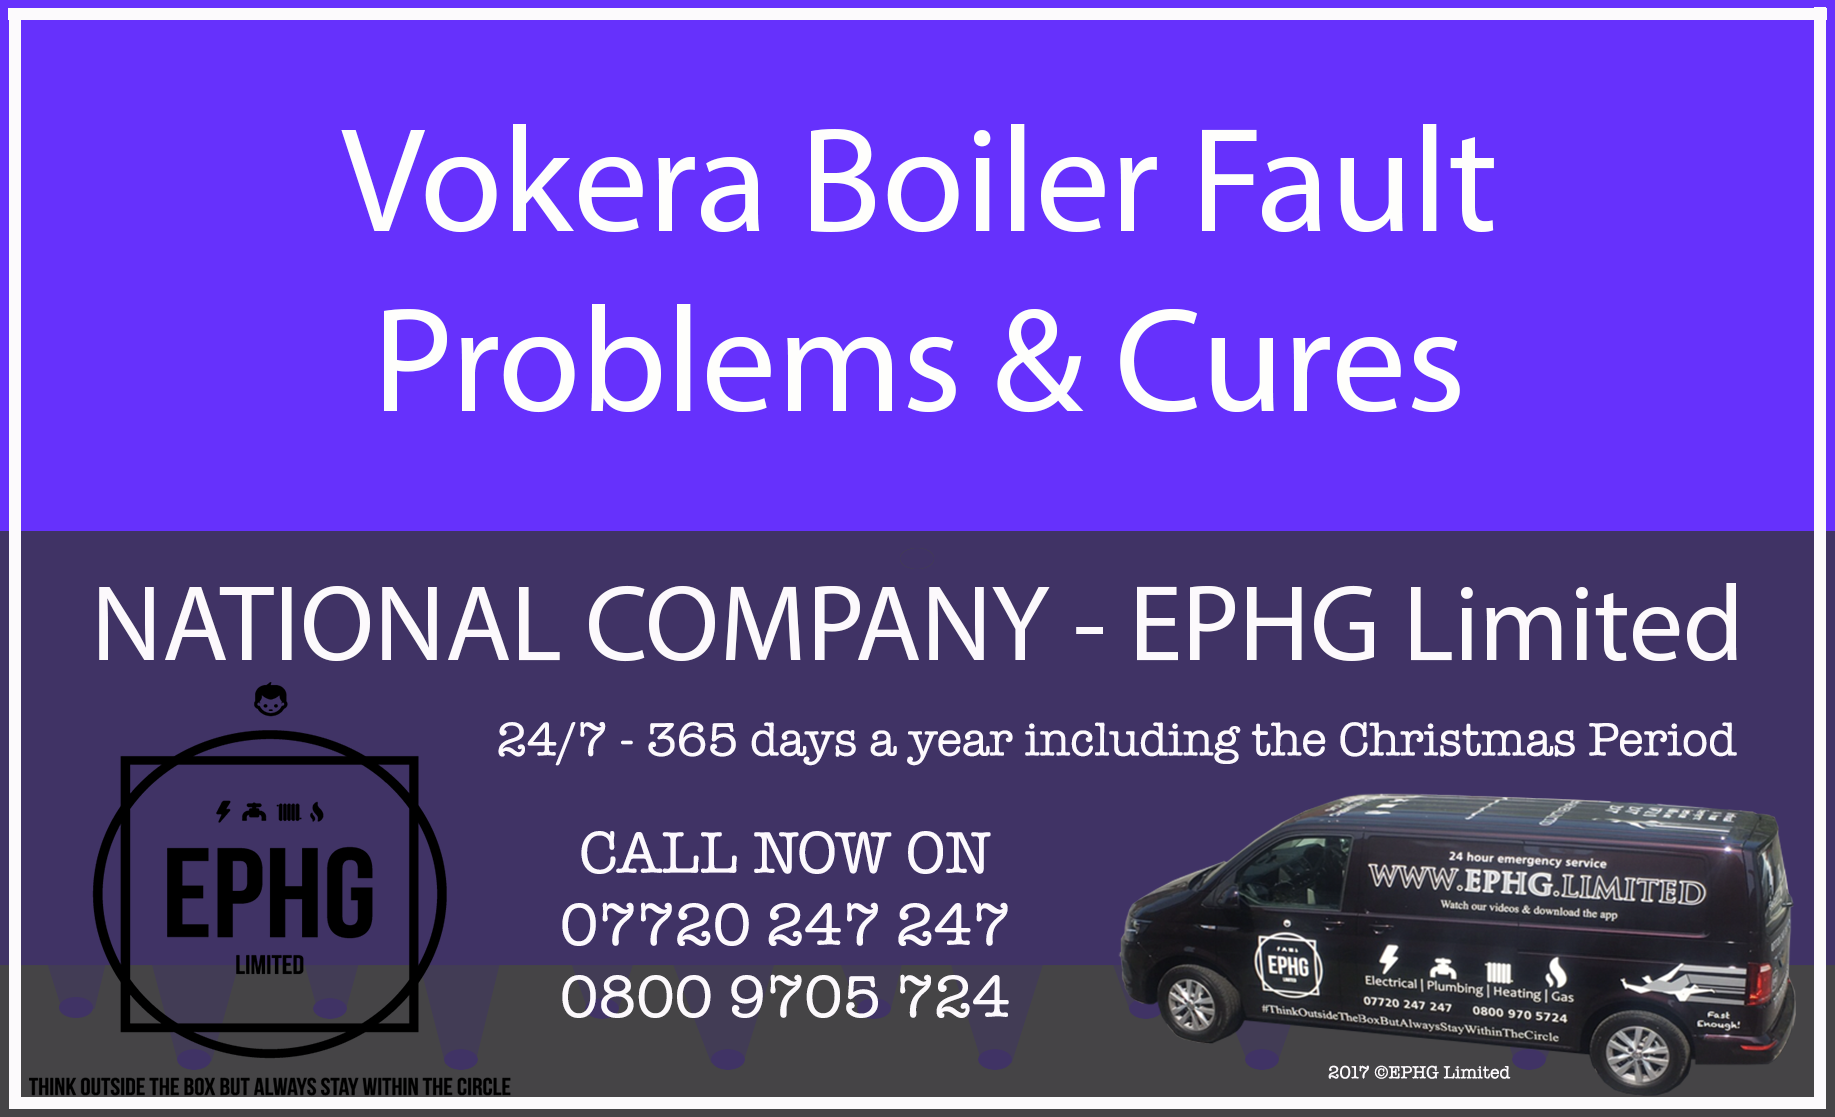 Vokera Boiler Fault Problem And Cures